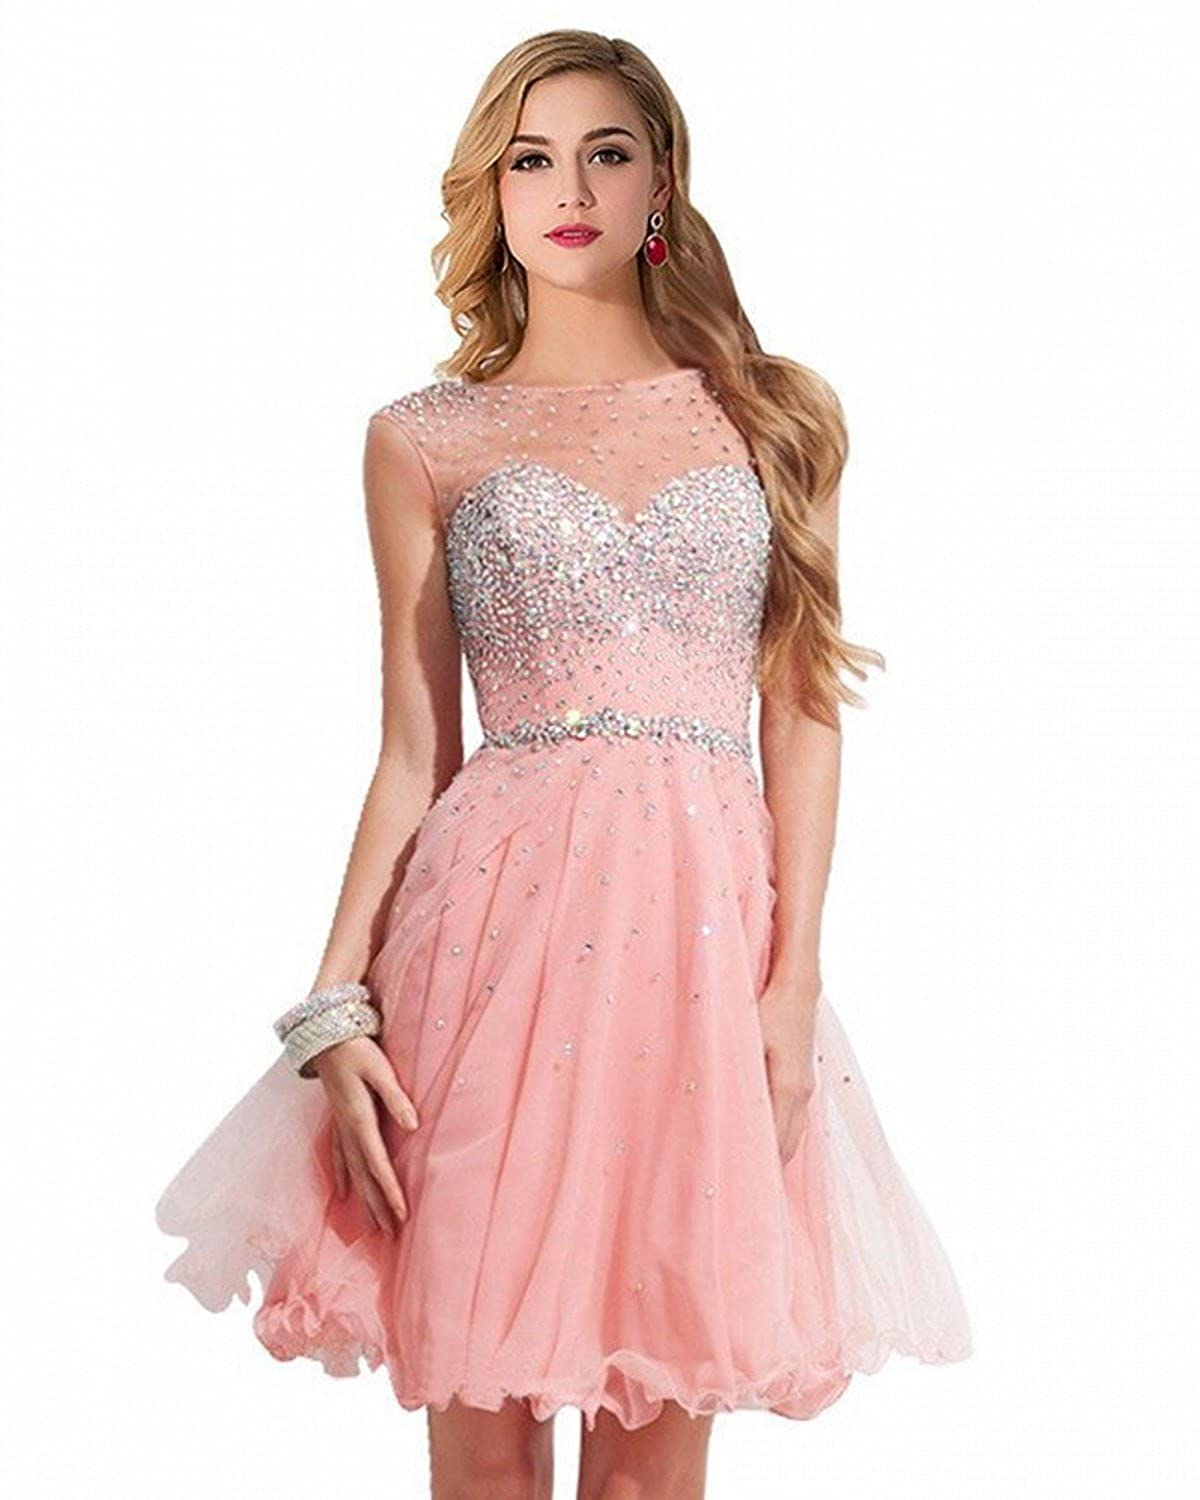 7baee37f1c Amazon.com  MisShow Women Crystal Open Back Short Prom Dress Cocktail  Homecoming Party Gowns  Clothing